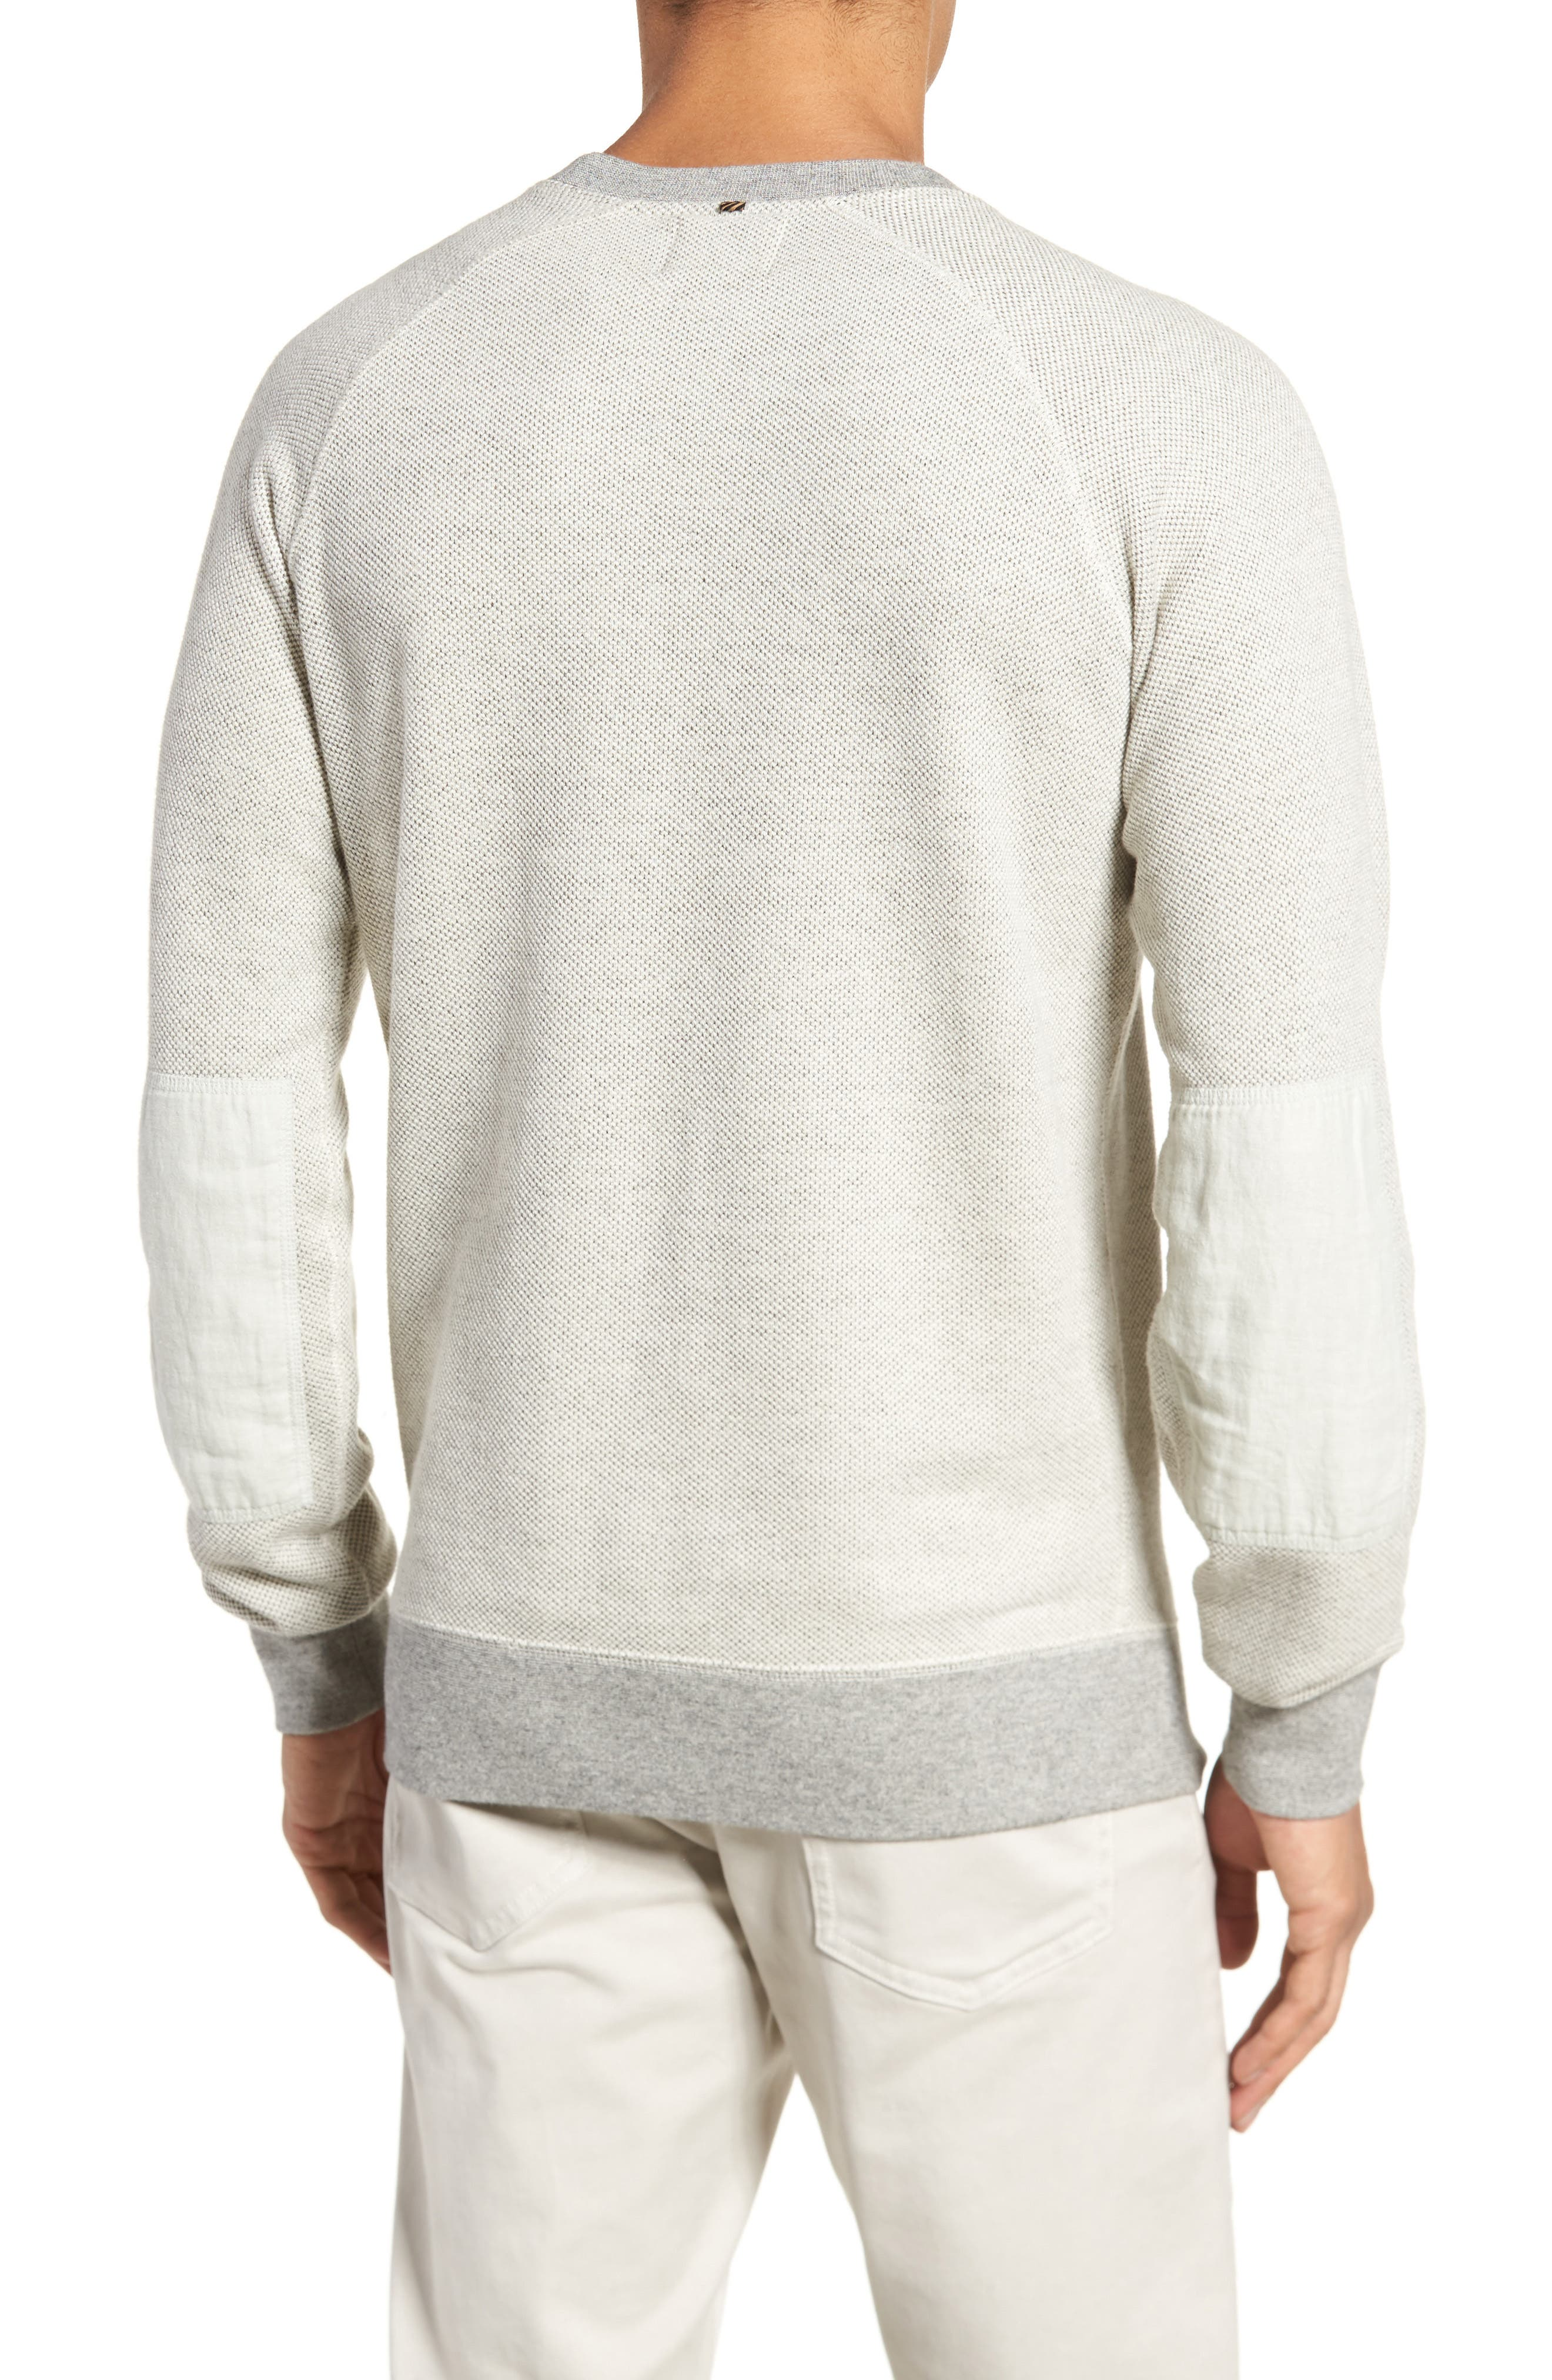 Tommy Pullover Sweatshirt,                             Alternate thumbnail 2, color,                             Light Grey